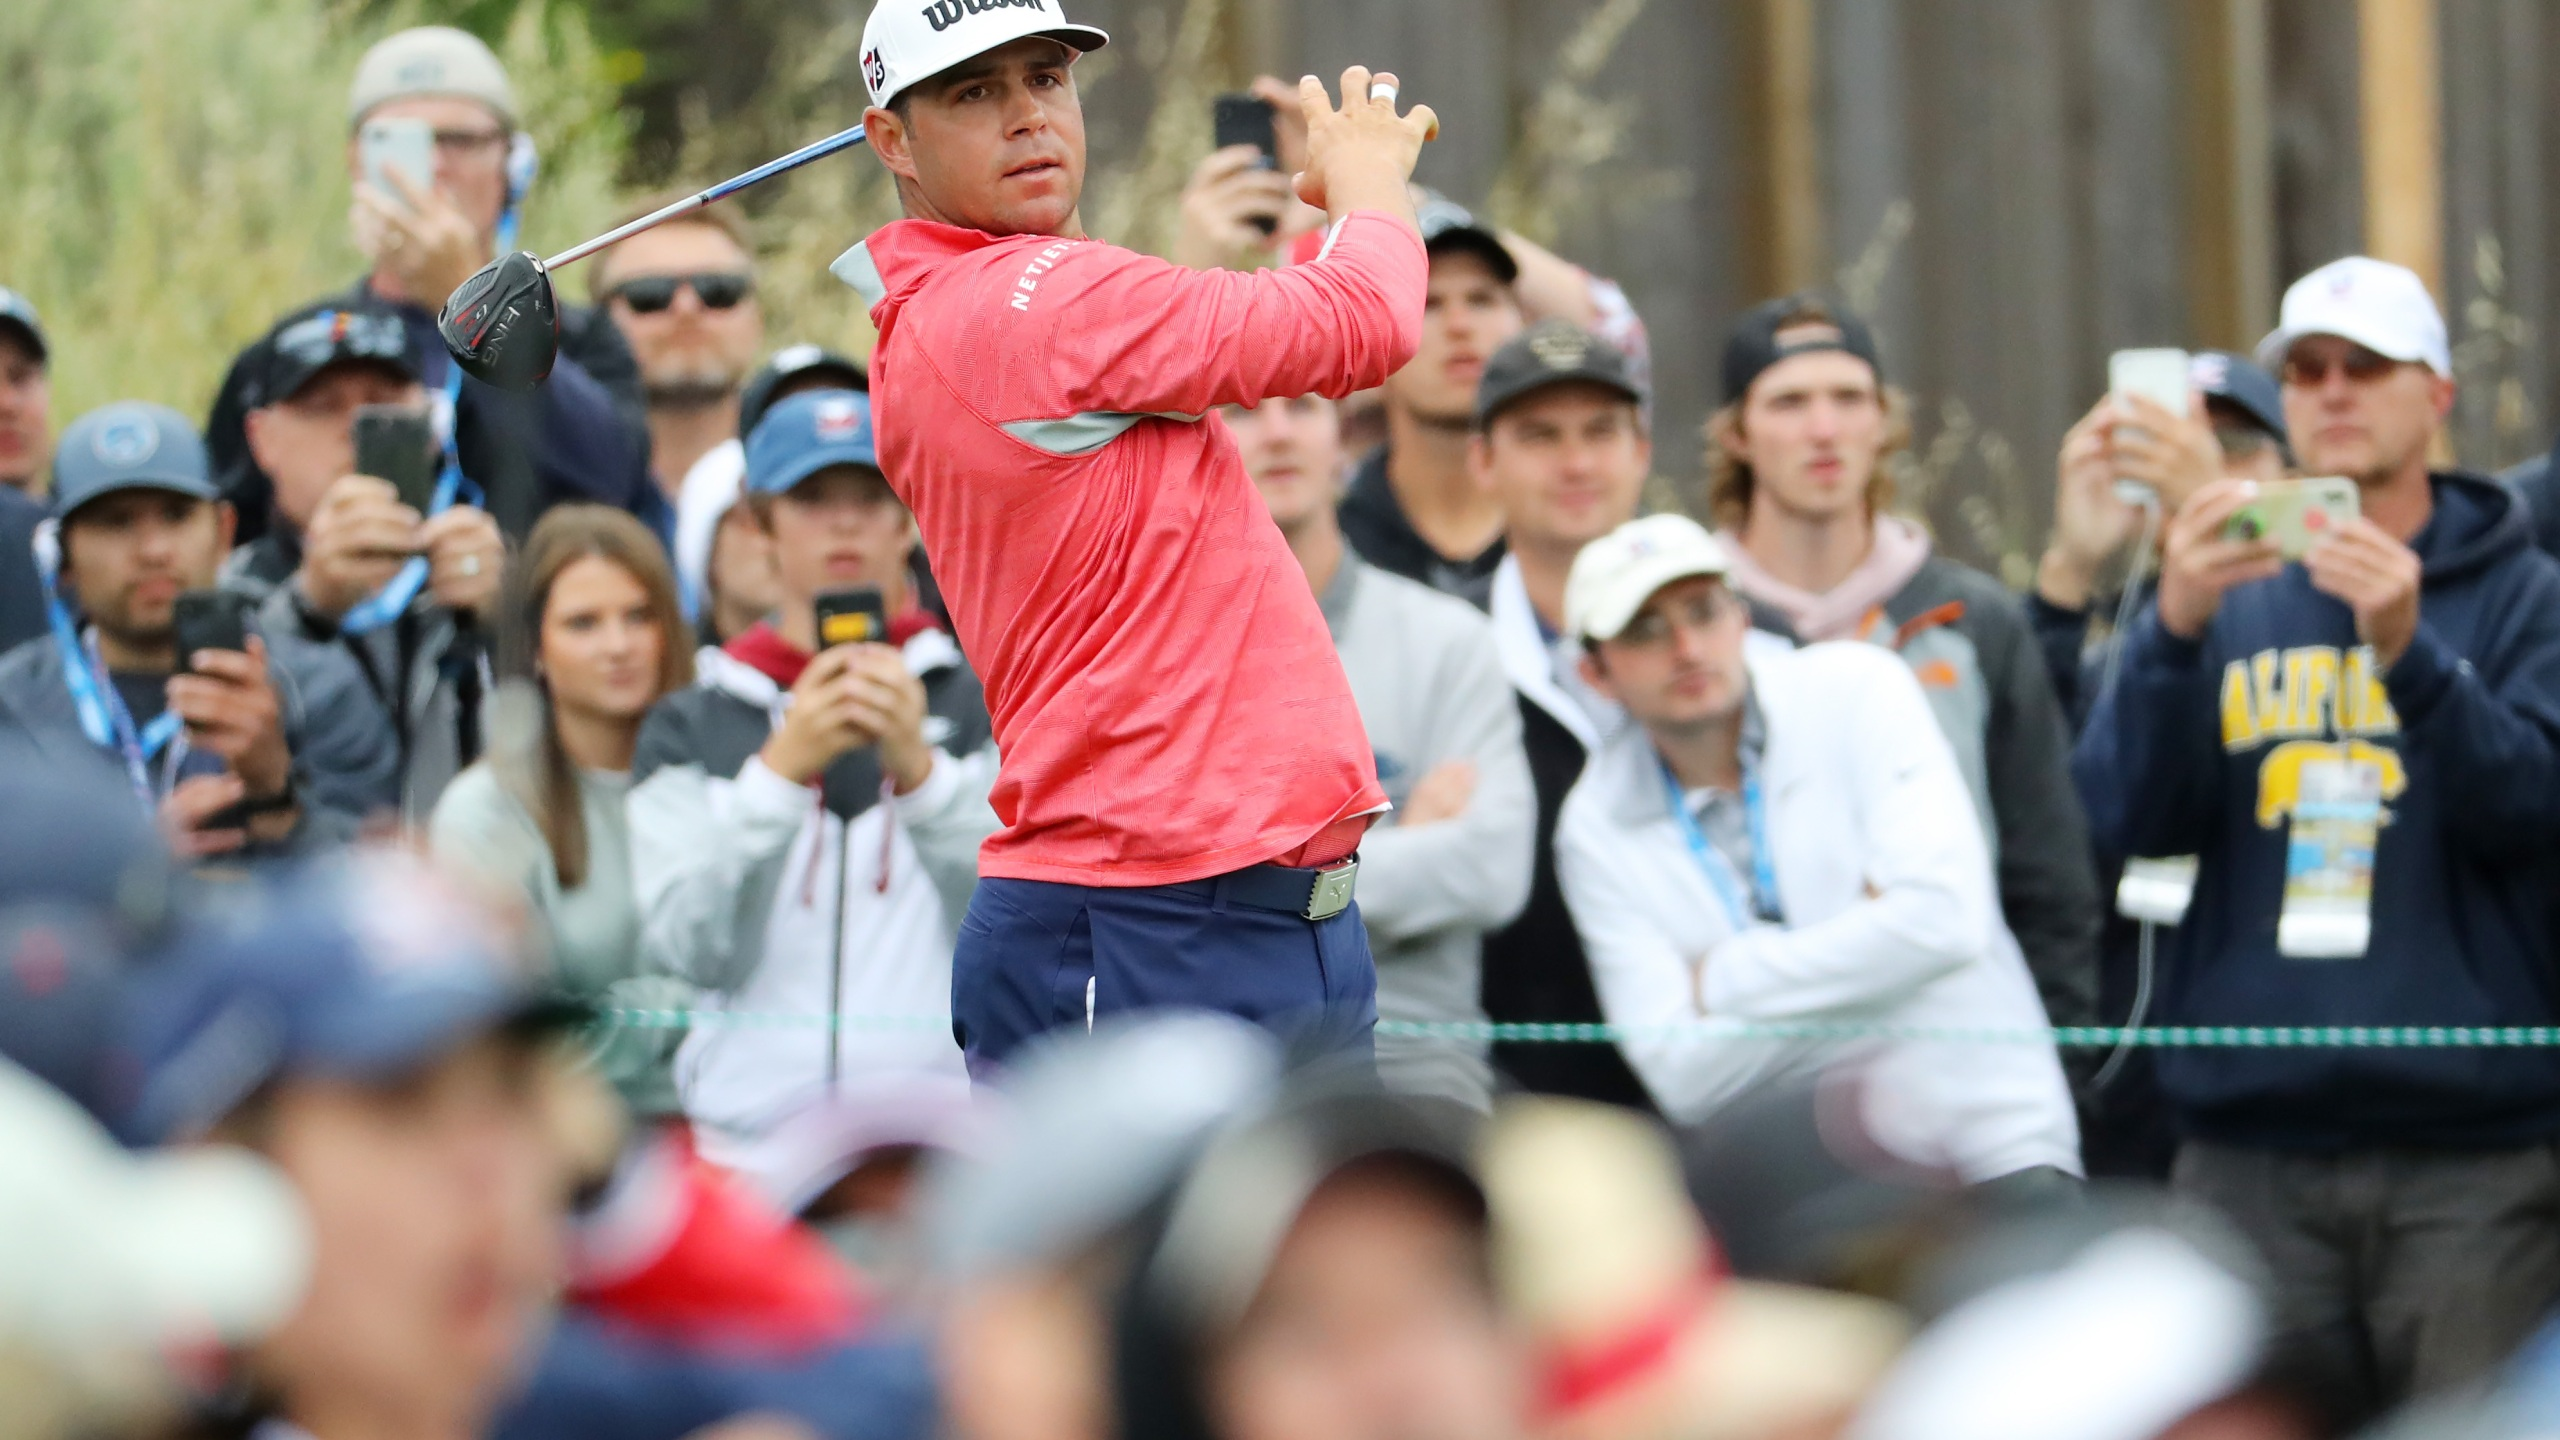 Gary Woodland of the United States plays a shot from the 13th tee during the final round of the 2019 U.S. Open at Pebble Beach Golf Links on June 16, 2019, in Pebble Beach, Calif. (Warren Little/Getty Images)